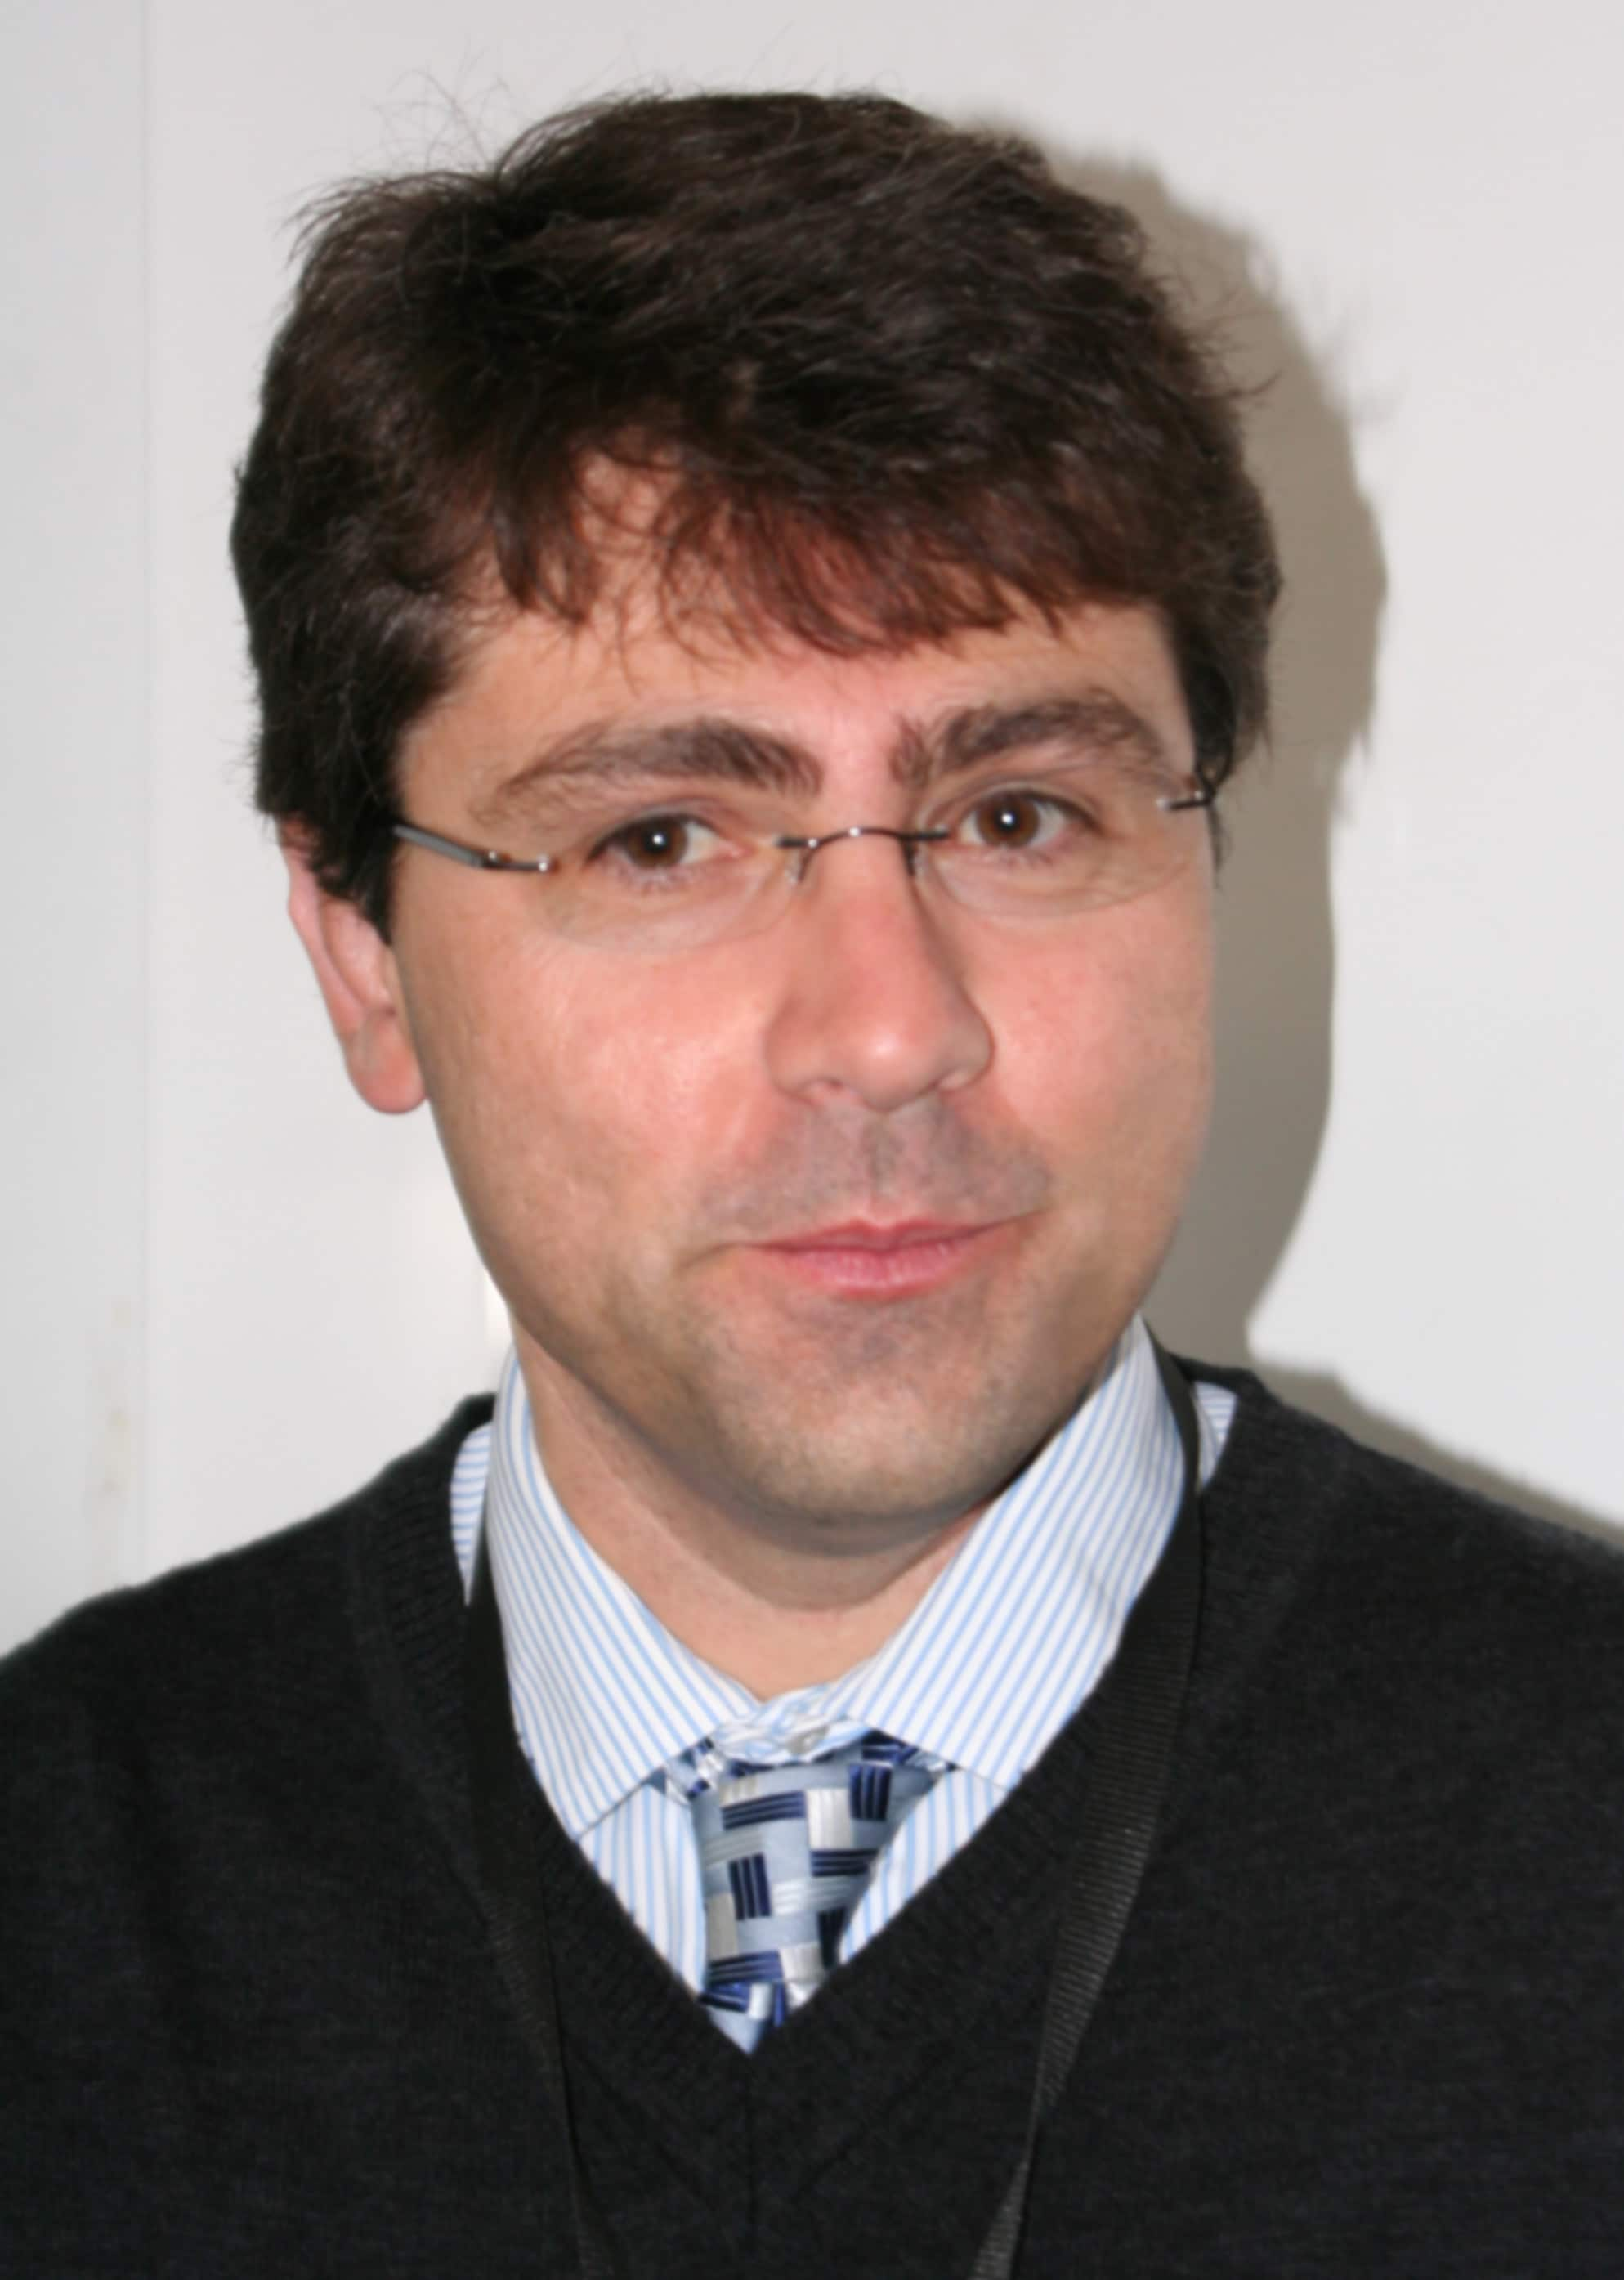 Associate Professor Jim Lagopoulos